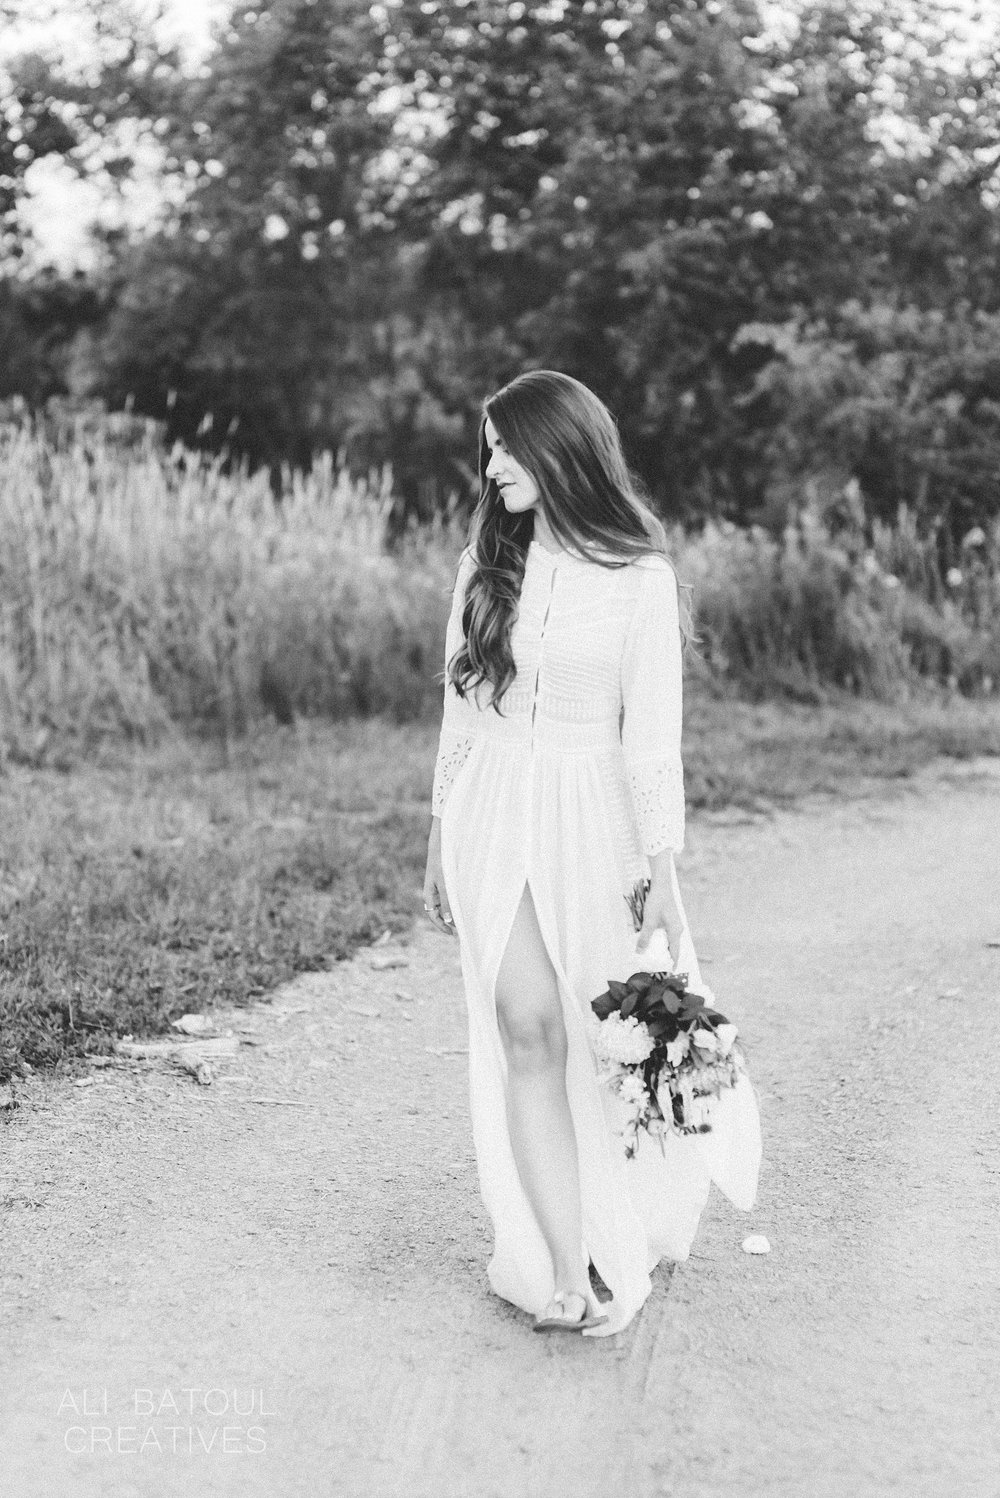 Boho Bridal Ottawa - Ali Batoul Creatives Fine Art Wedding Photography_0377.jpg